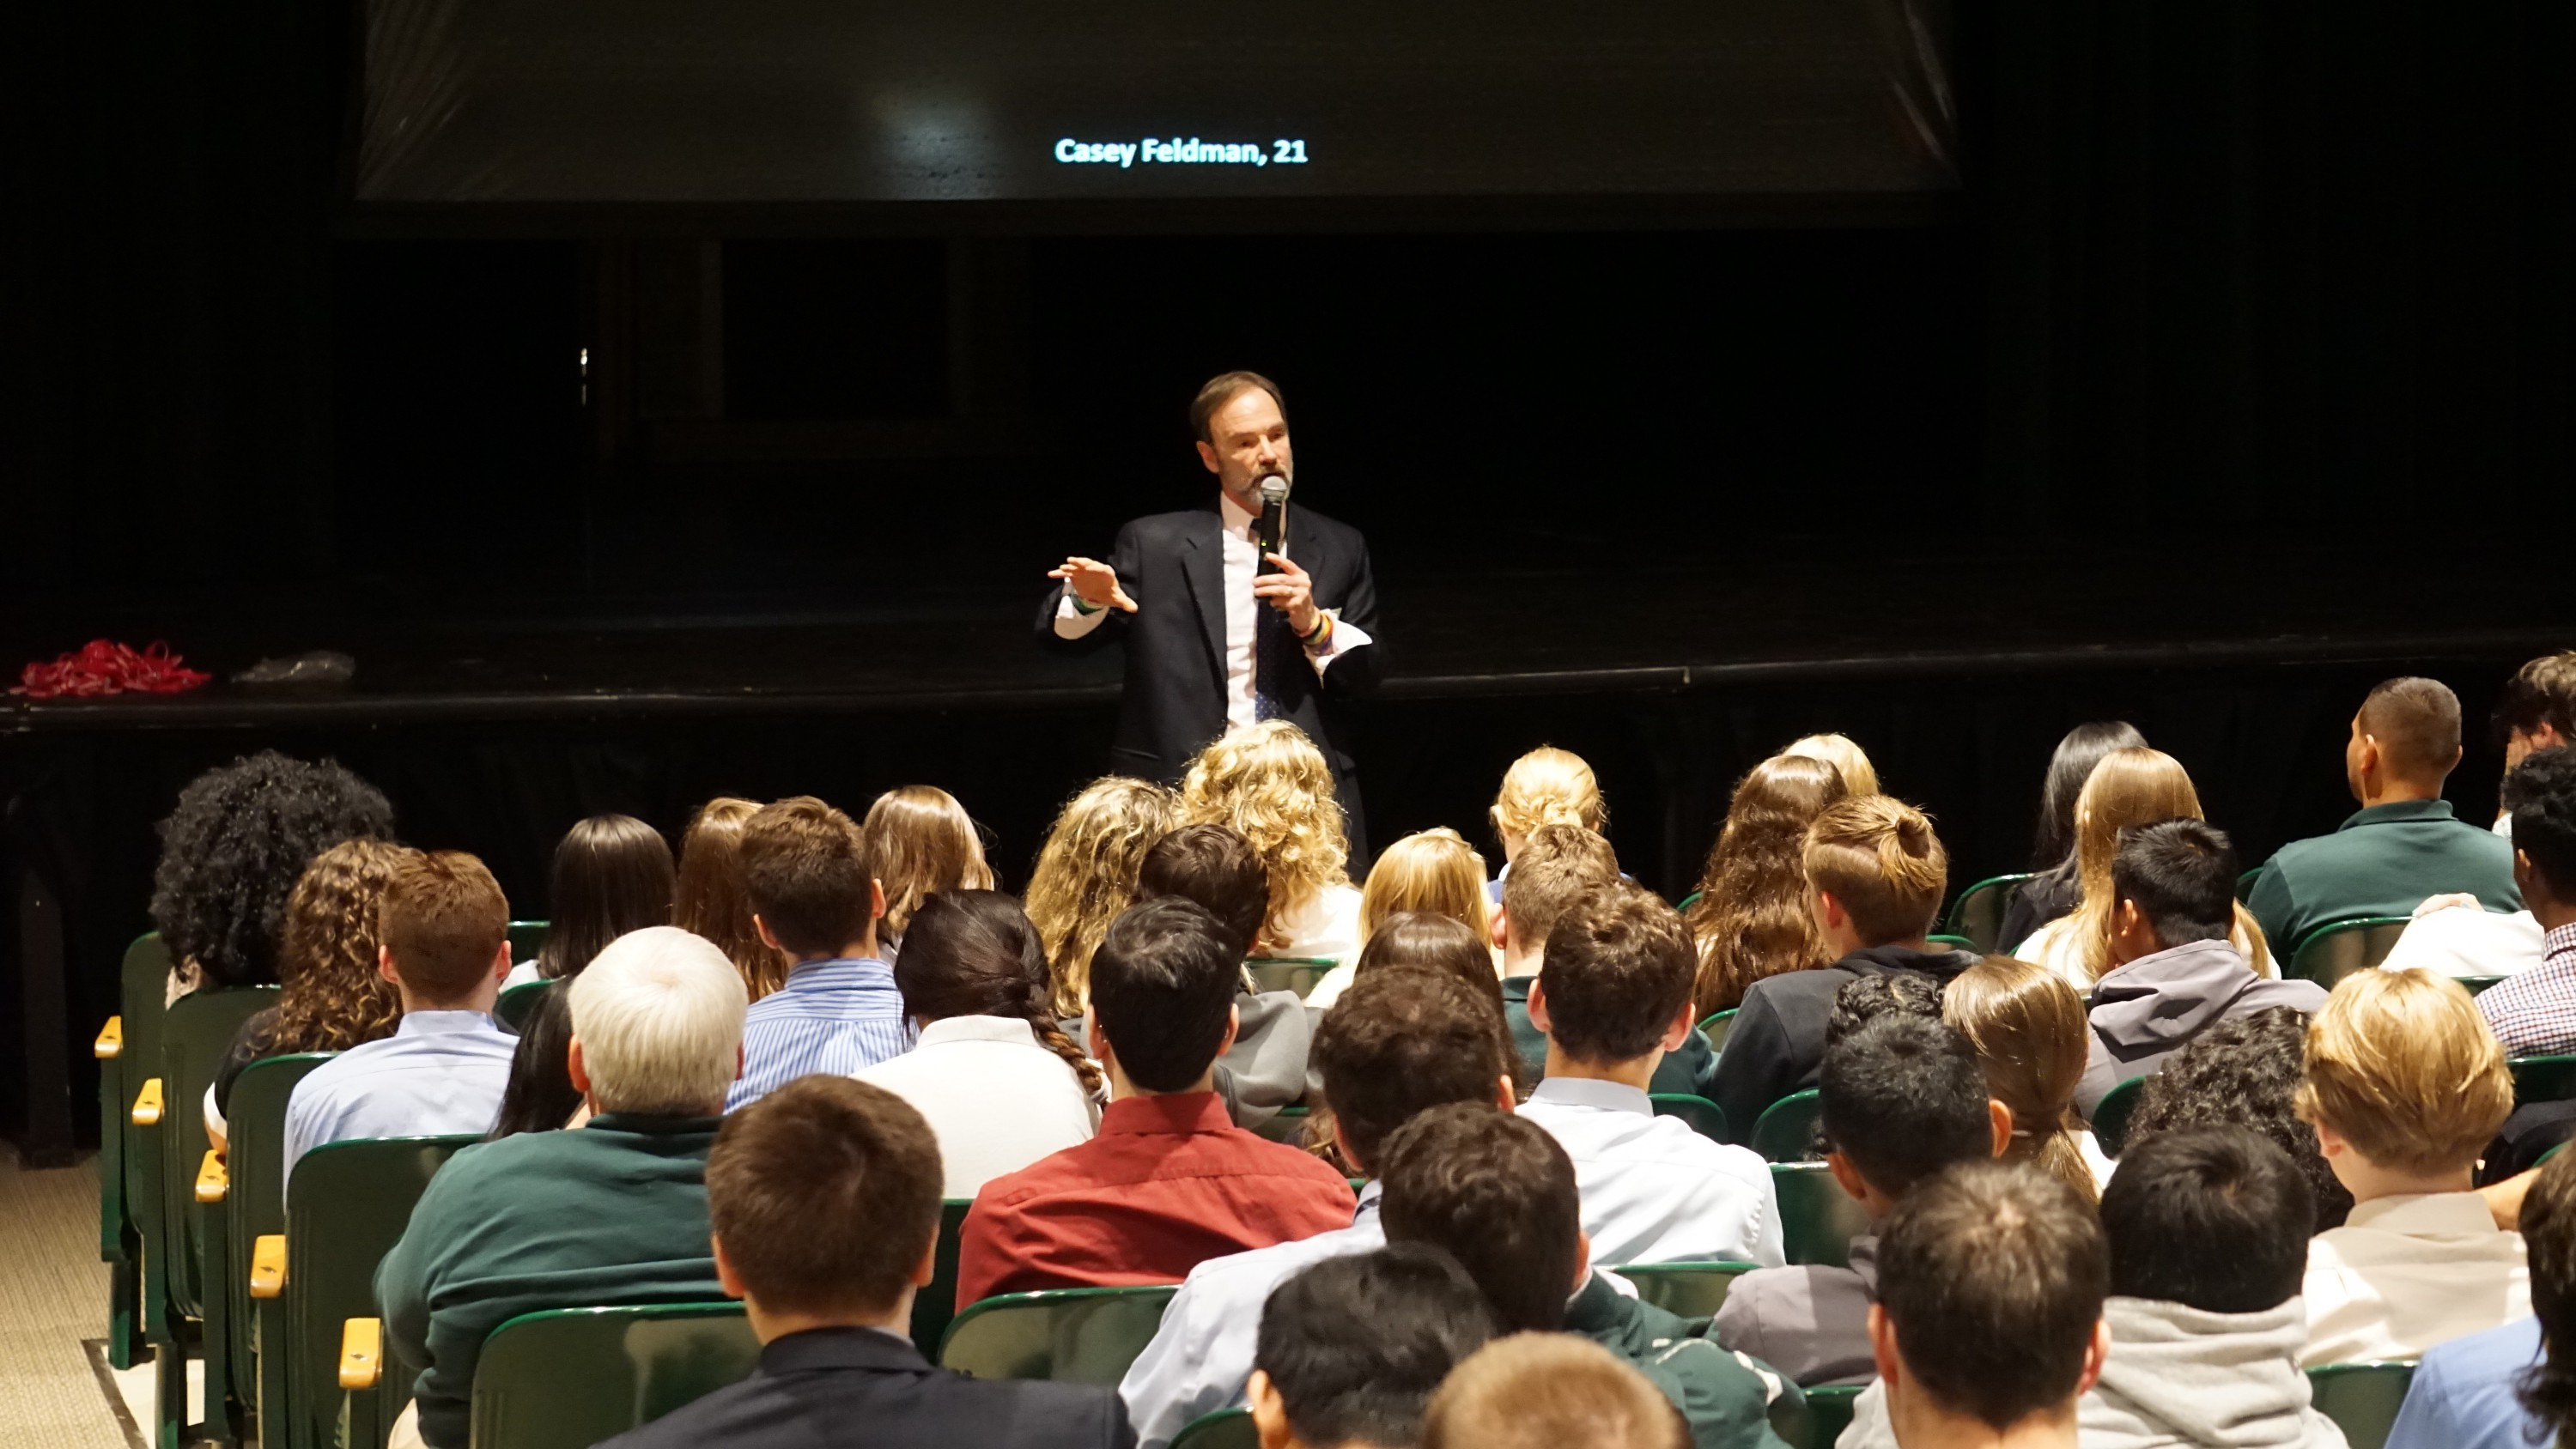 Joel Feldman, founder of the Casey Feldman Memorial Foundation, warns Northwest Catholic students of dangers of distracted driving.